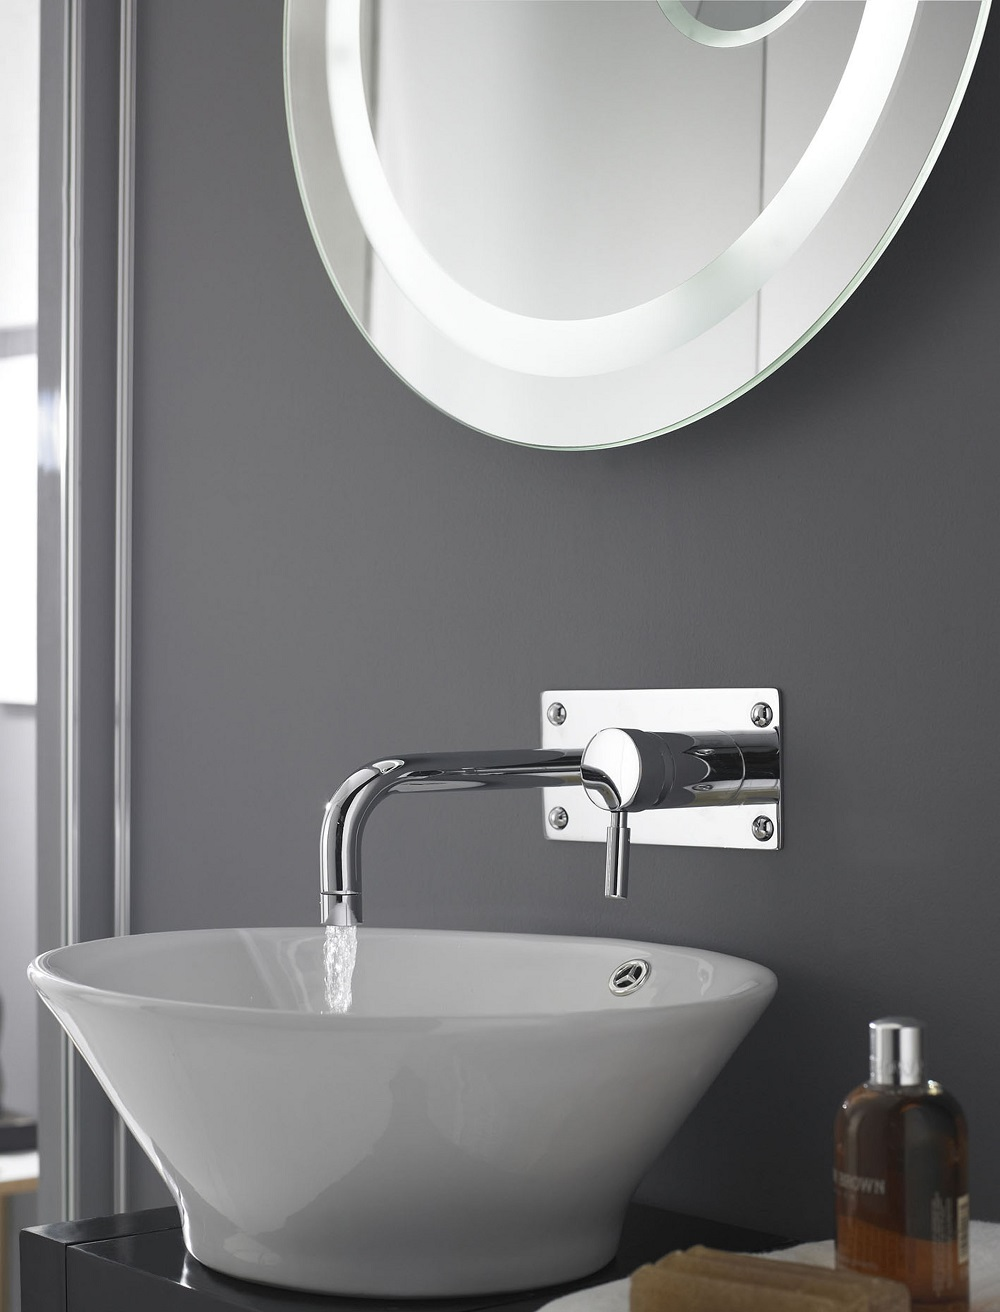 Spectacular wall mounted tap